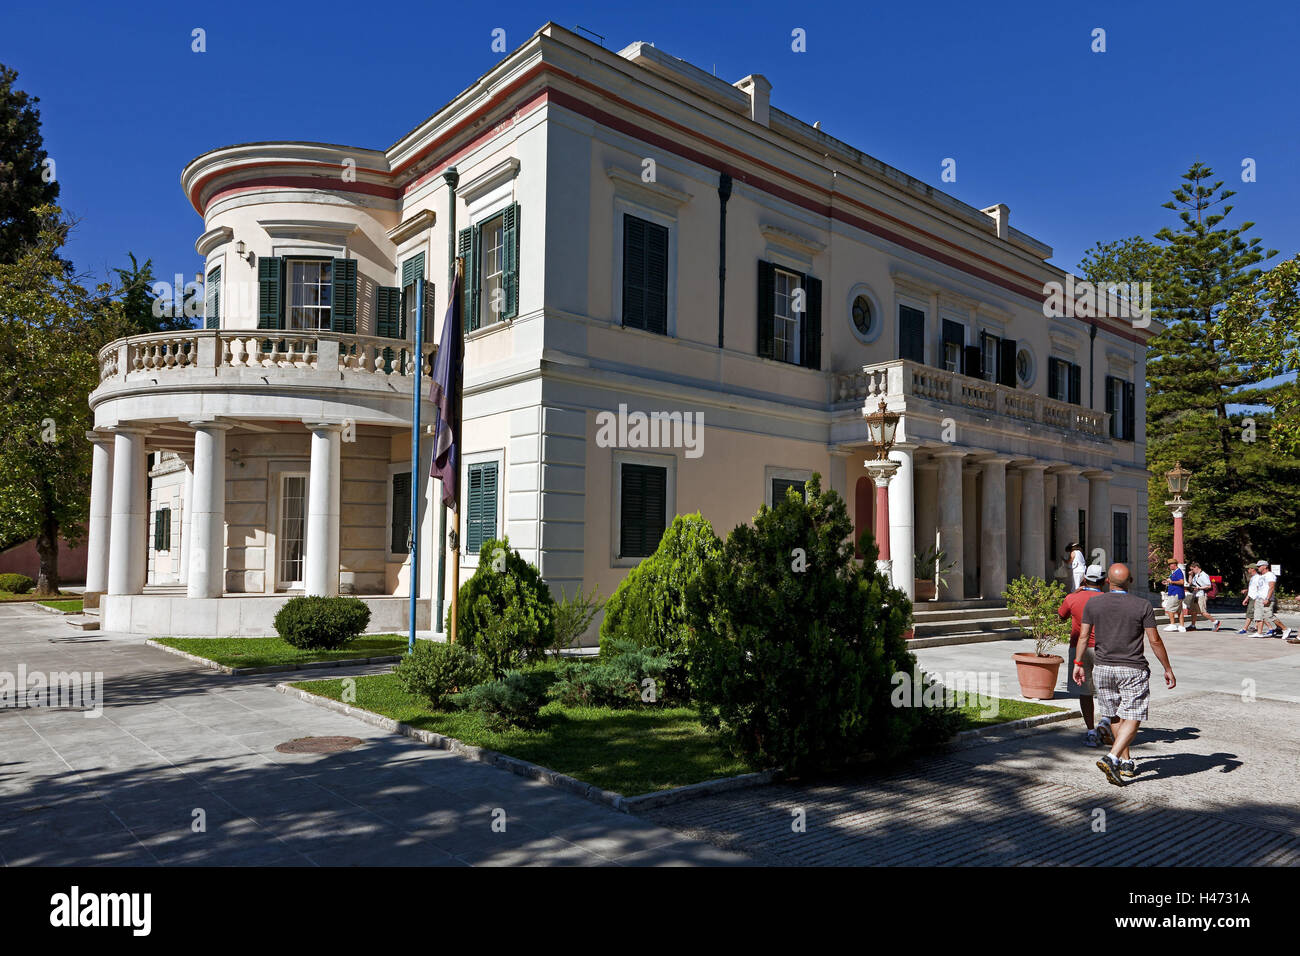 Greece, Corfu, Palace Mon Repos, tourists Analipsi Peninsula, Corfu, Kerkira, Southern Europe, Europe, Analipsi, - Stock Image